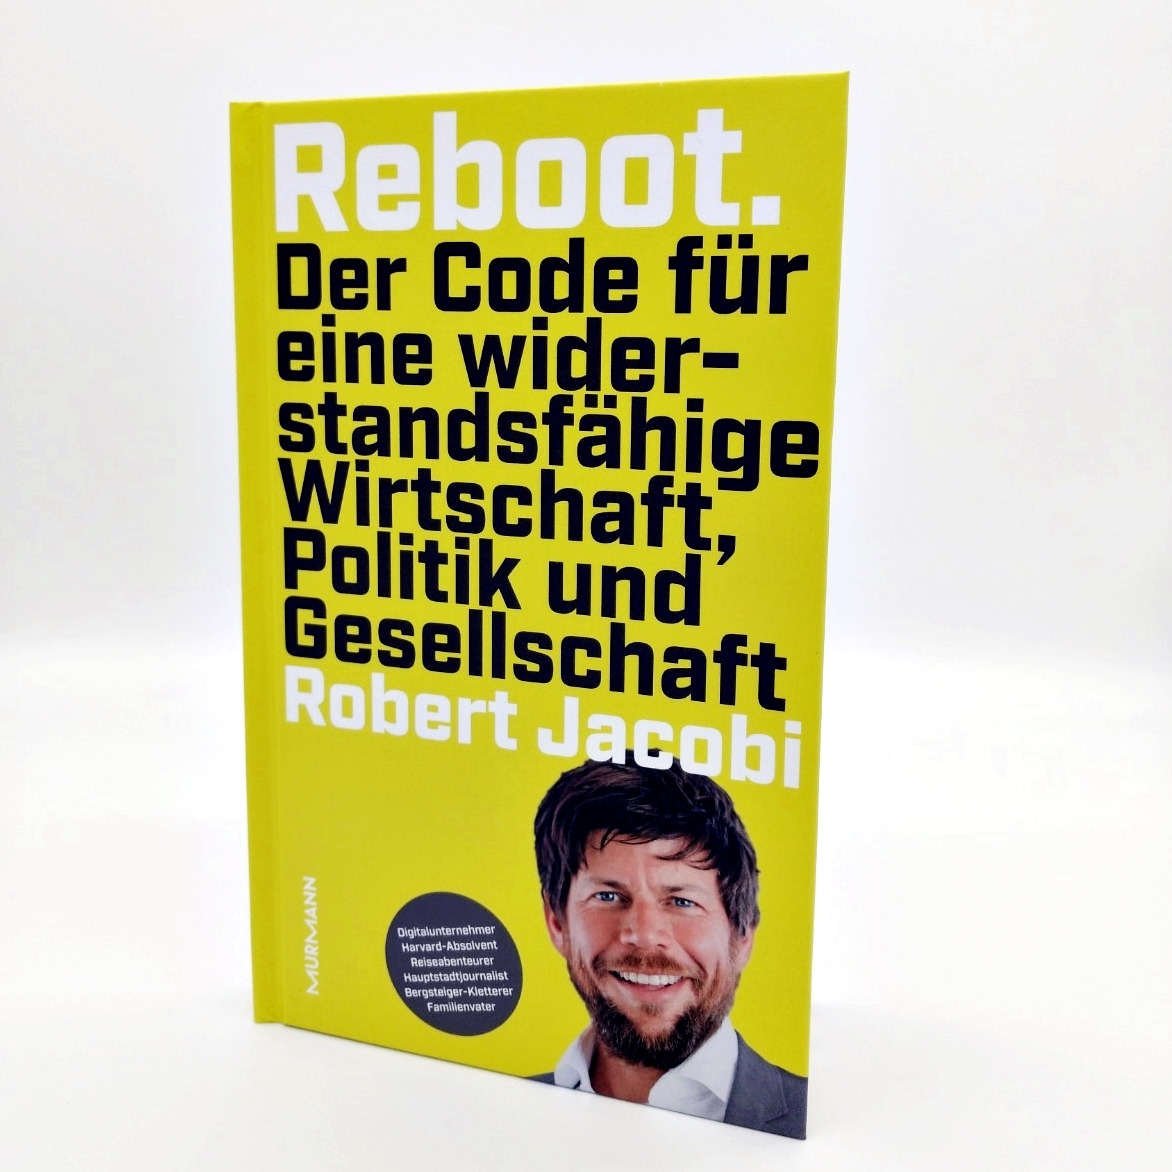 *Reboot / Robert Jacobi